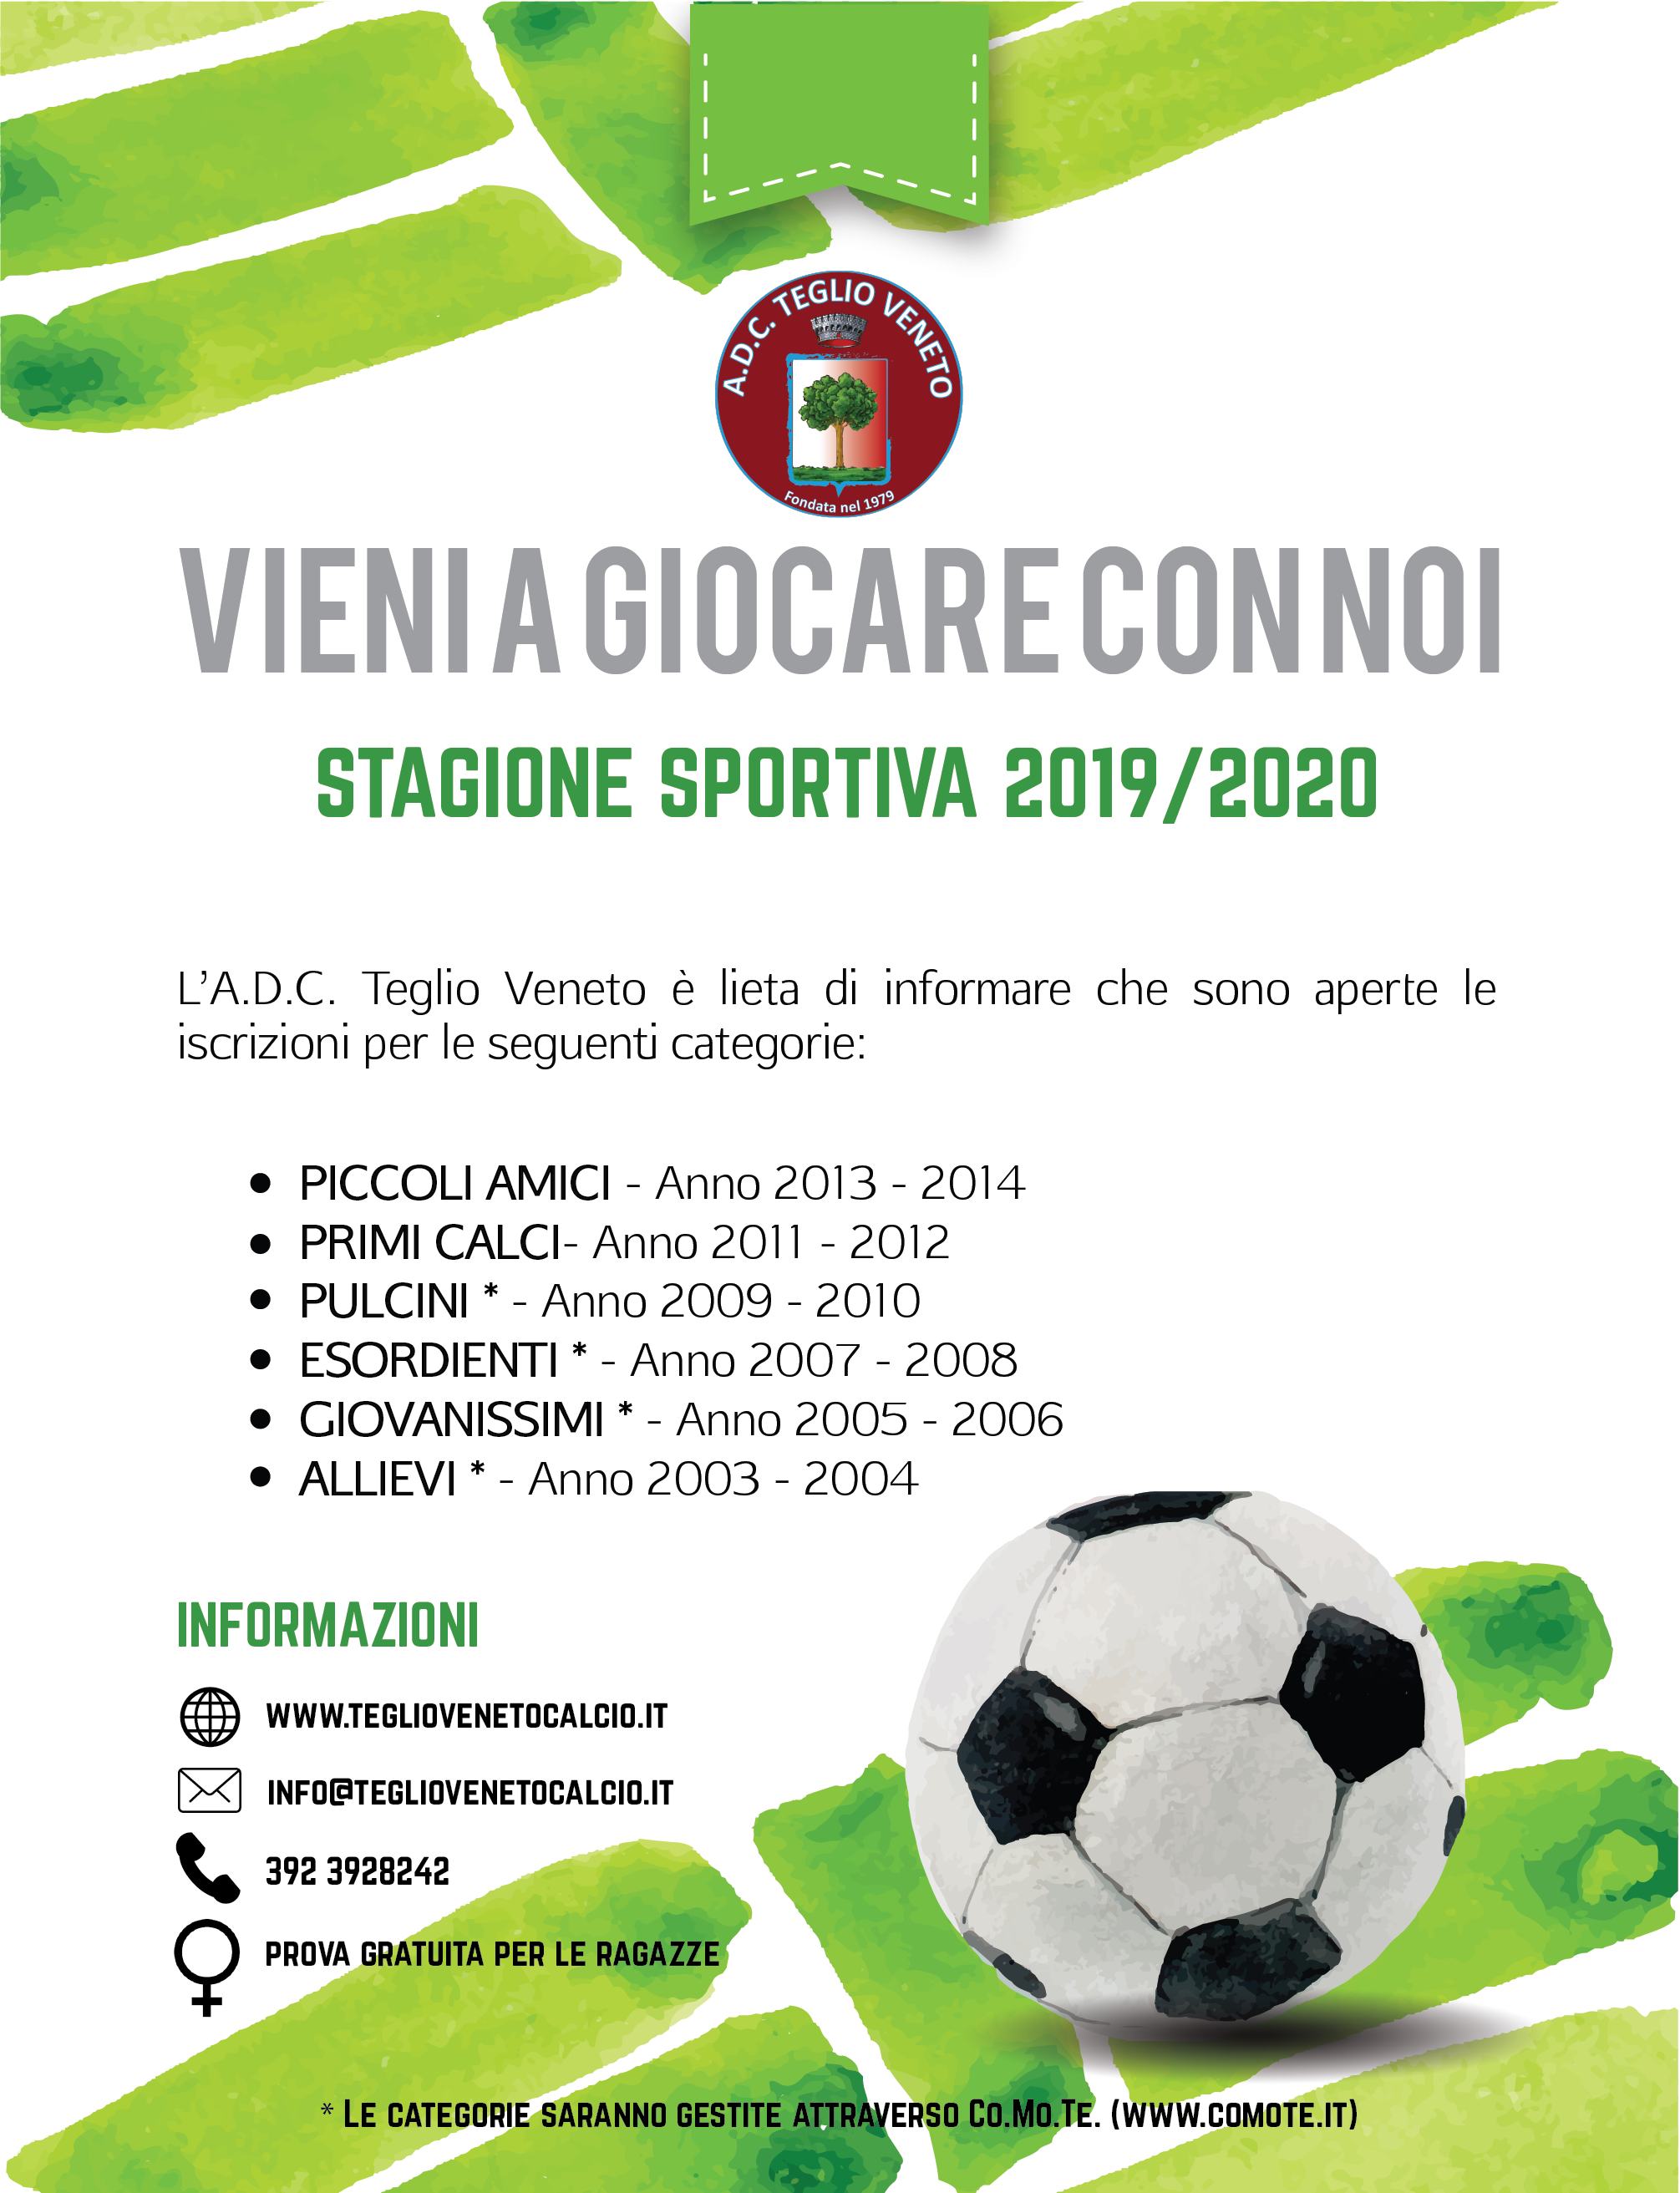 Calendario Seconda Categoria Veneto.Trofeo Regione Veneto Di Seconda Categoria A D C Teglio